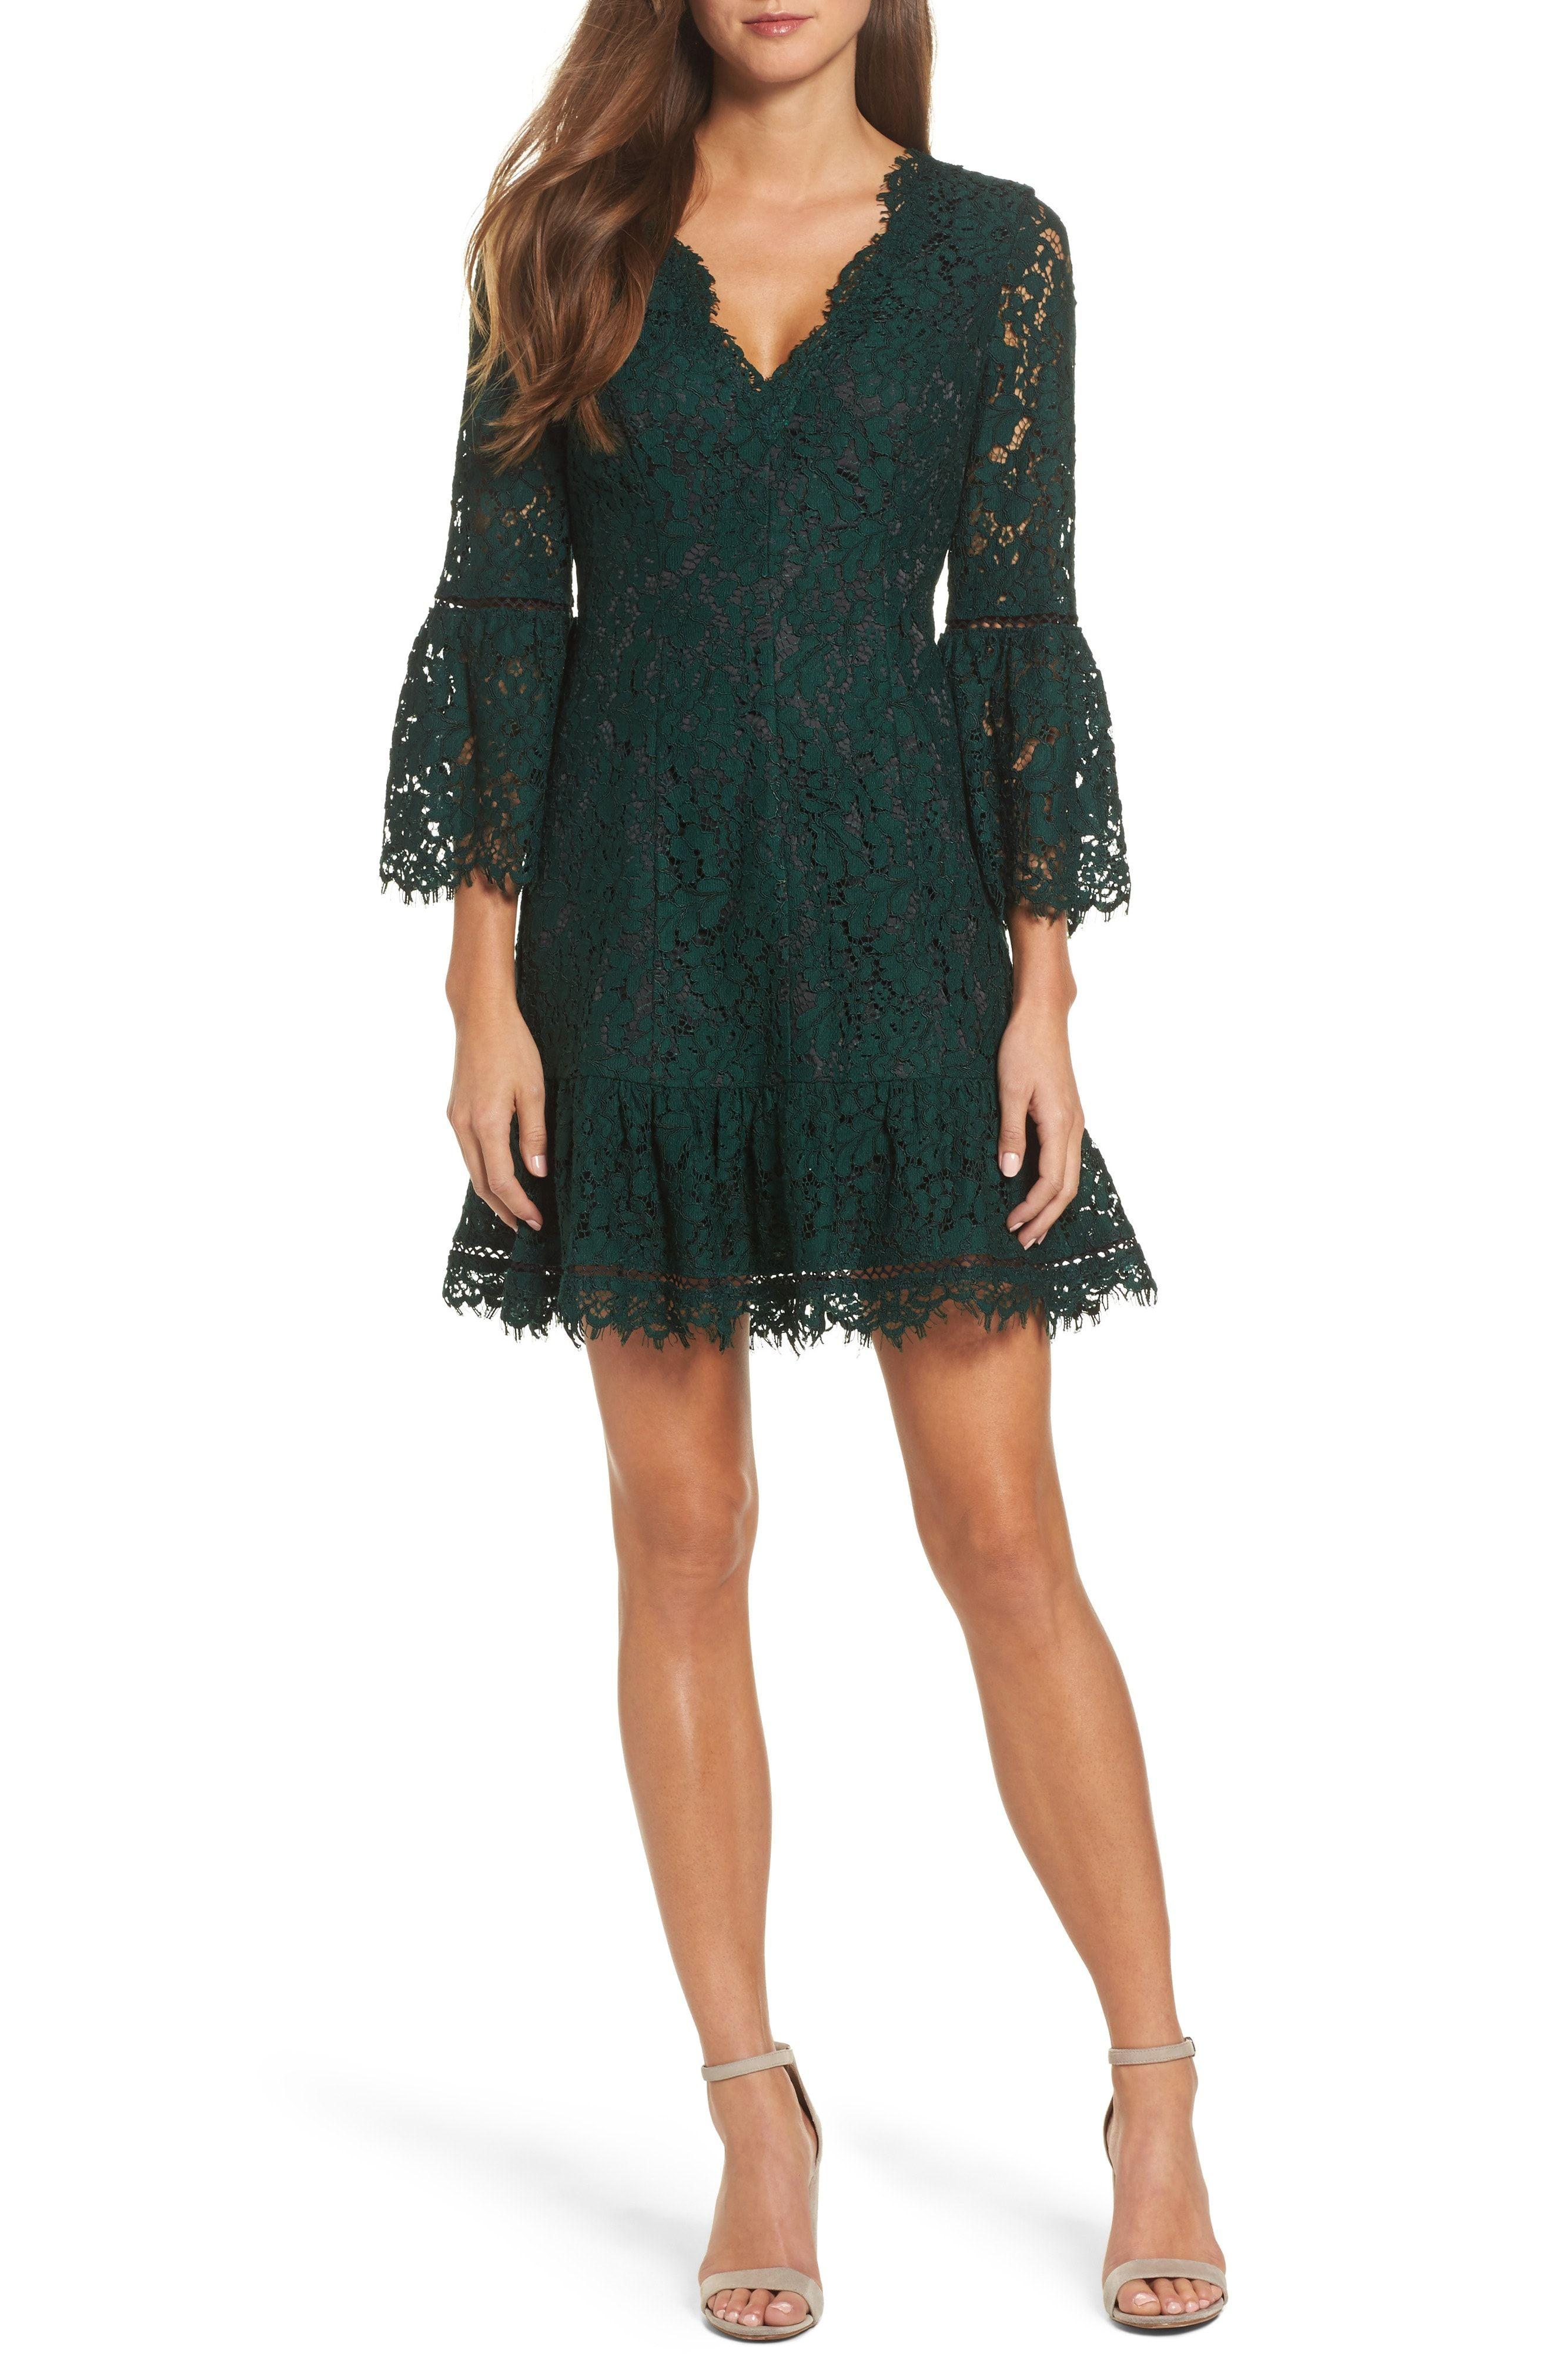 Eliza j bell sleeve lace dress regular u petite fashion finds